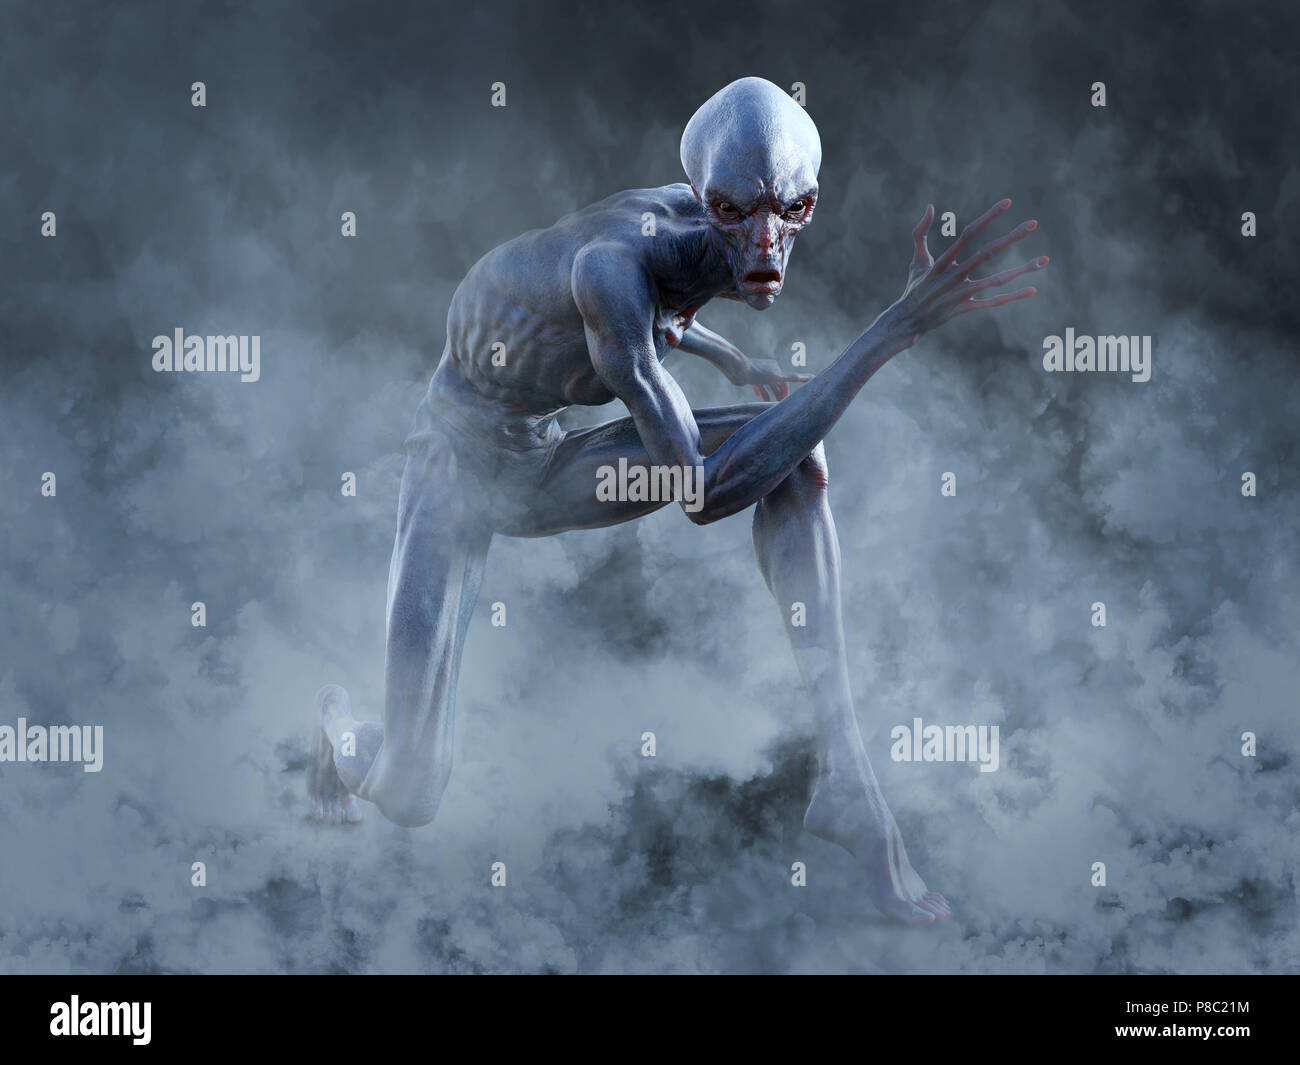 Portrait of an alien creature crouching and looking very angry, ready to attack, 3D rendering. He is surrounded by smoke or fog. - Stock Image